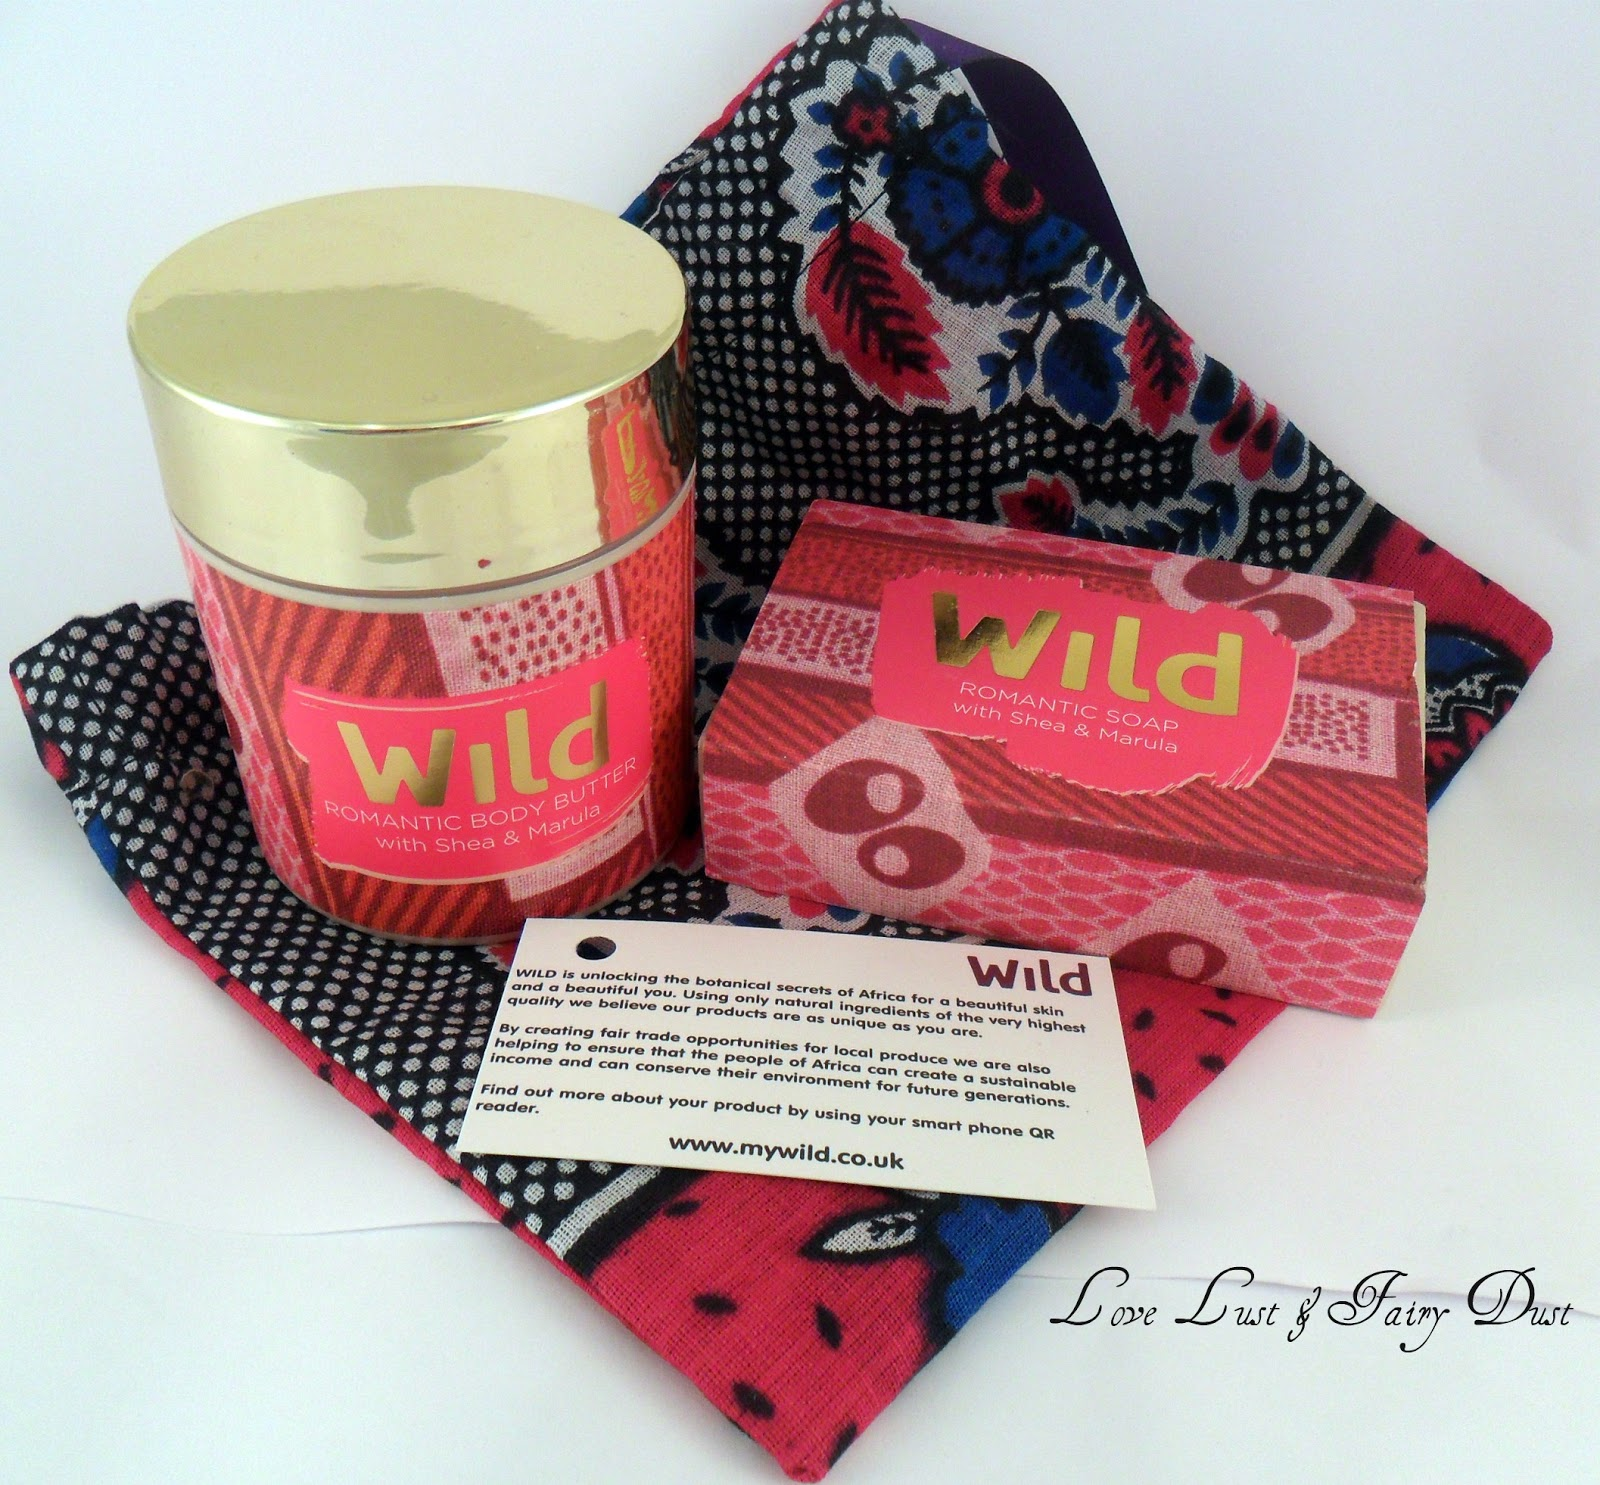 Wild, Fair Trade African Beauty Products